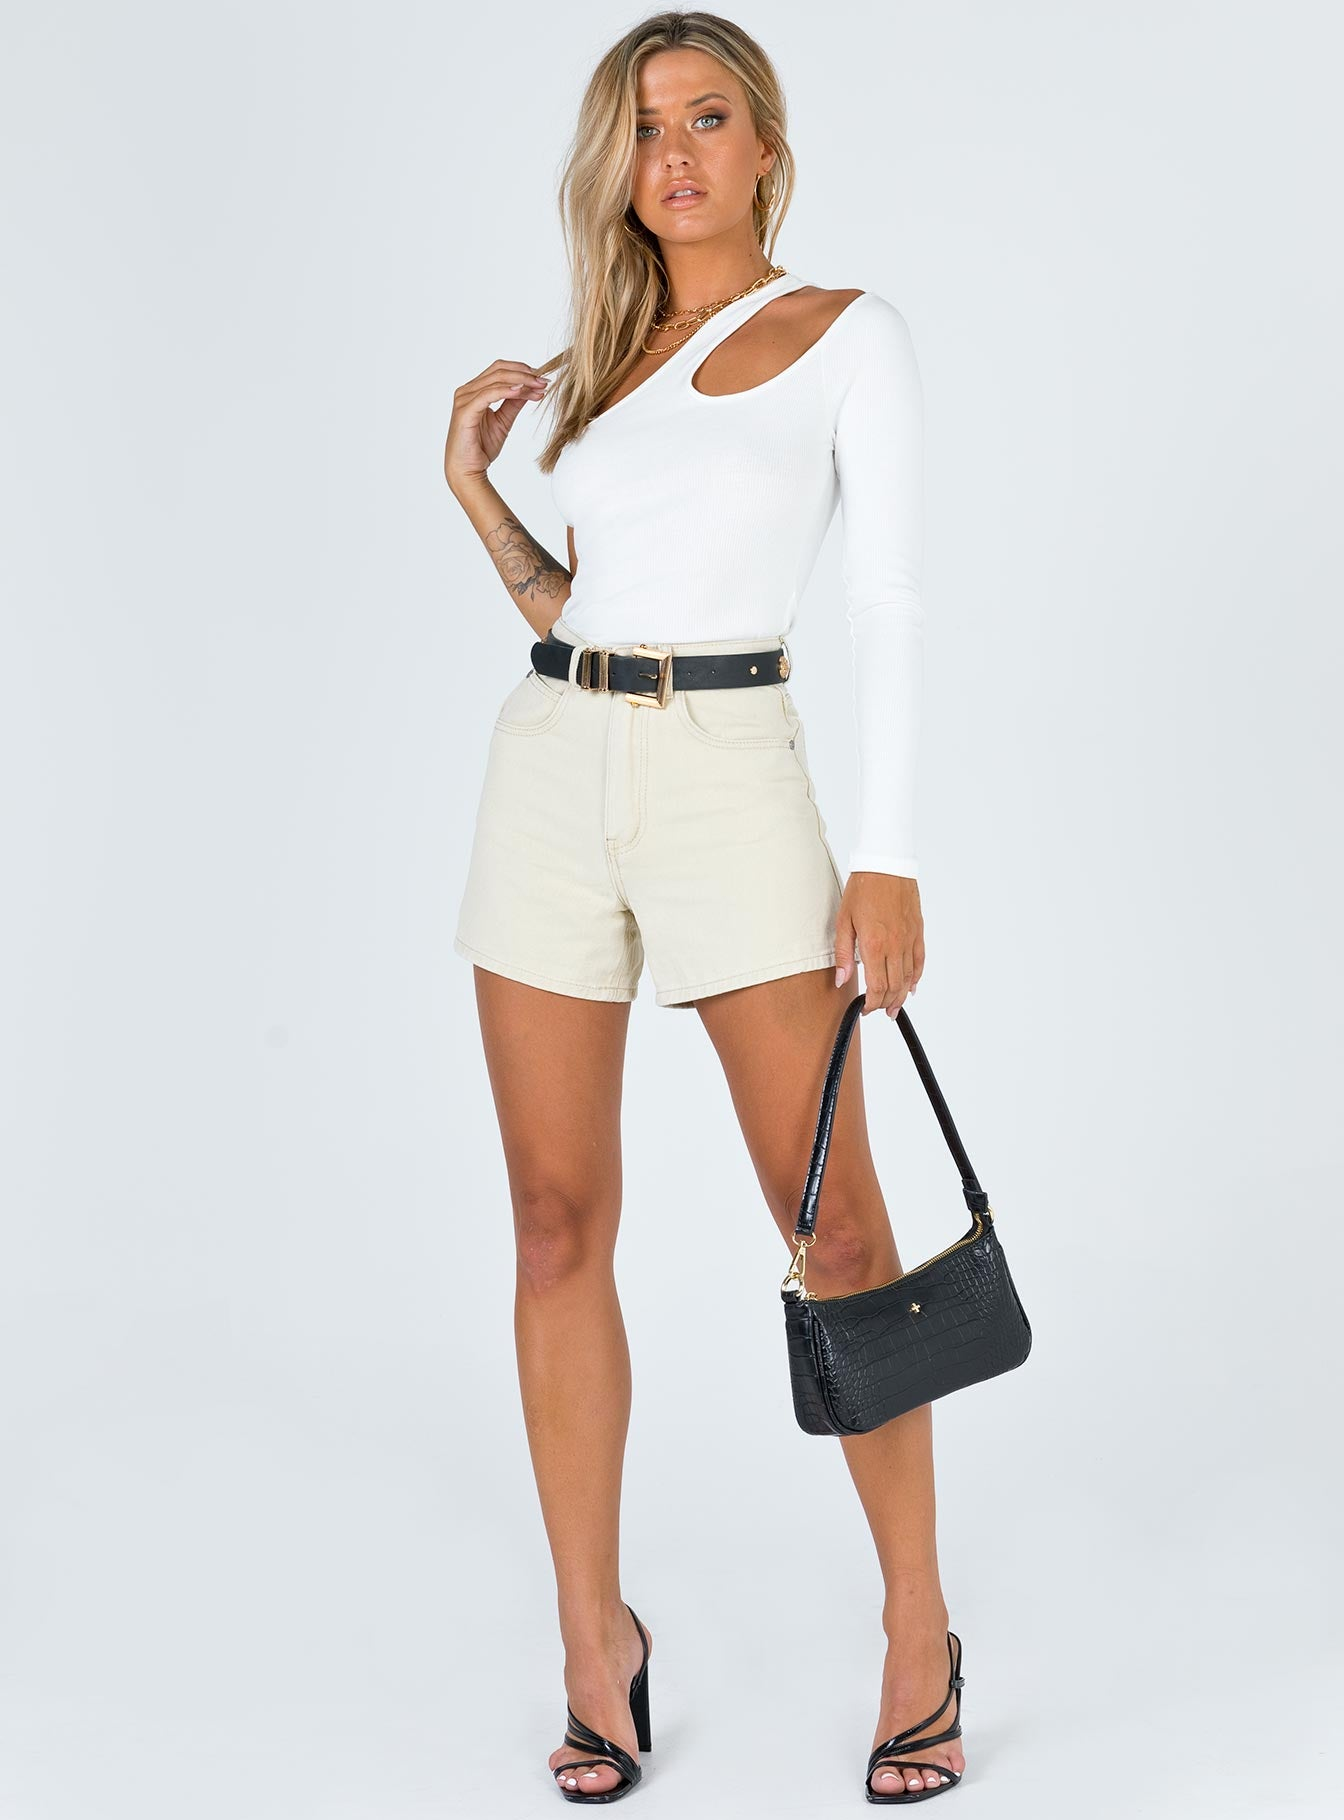 The Swalla Shorts Beige